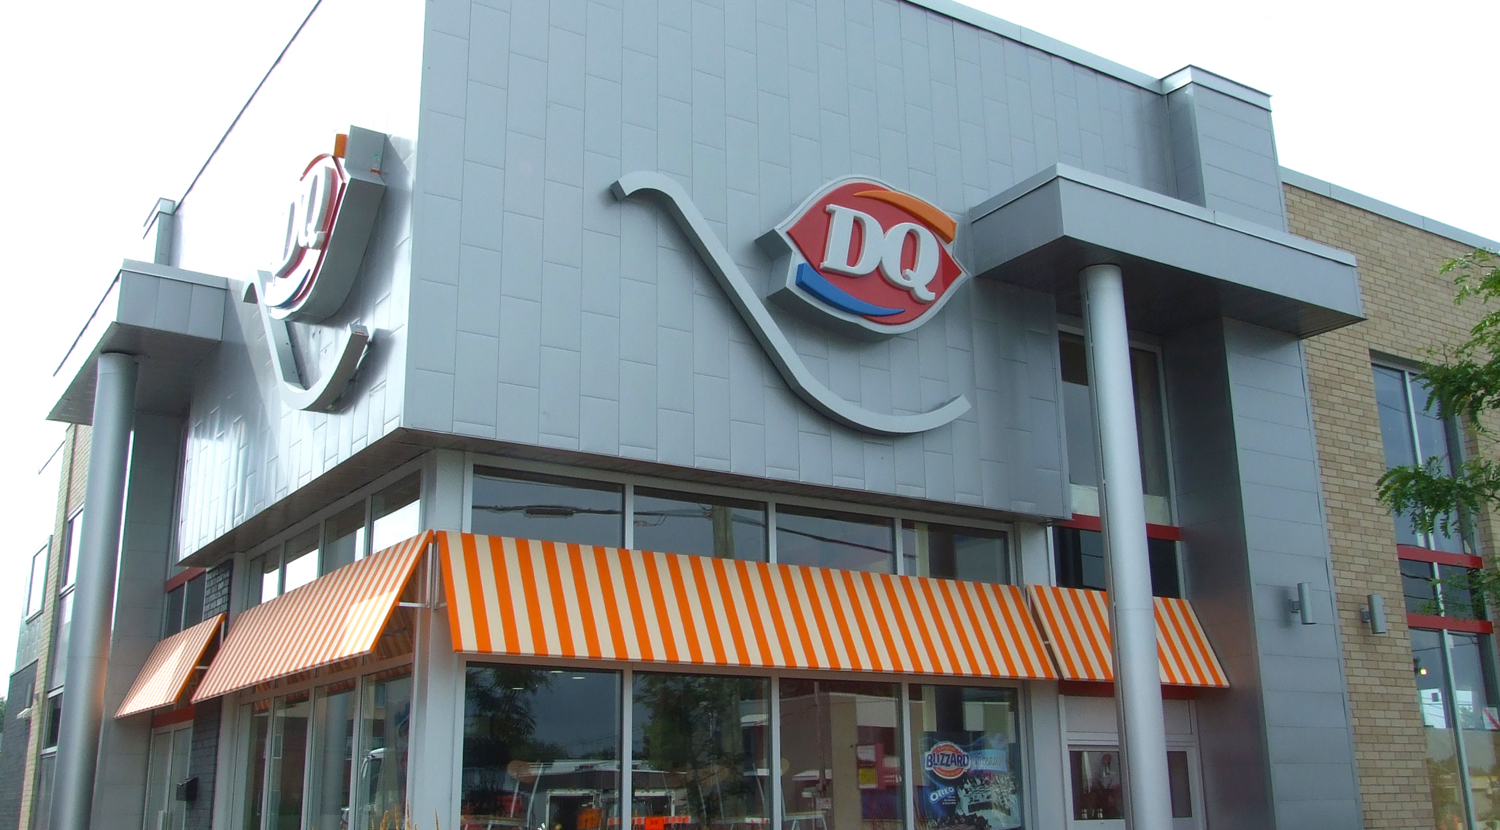 940Dairy-Queen-87-route-116-métal-block-et-MS-9-Égalité-totale-gris-métallique-003-1500x830